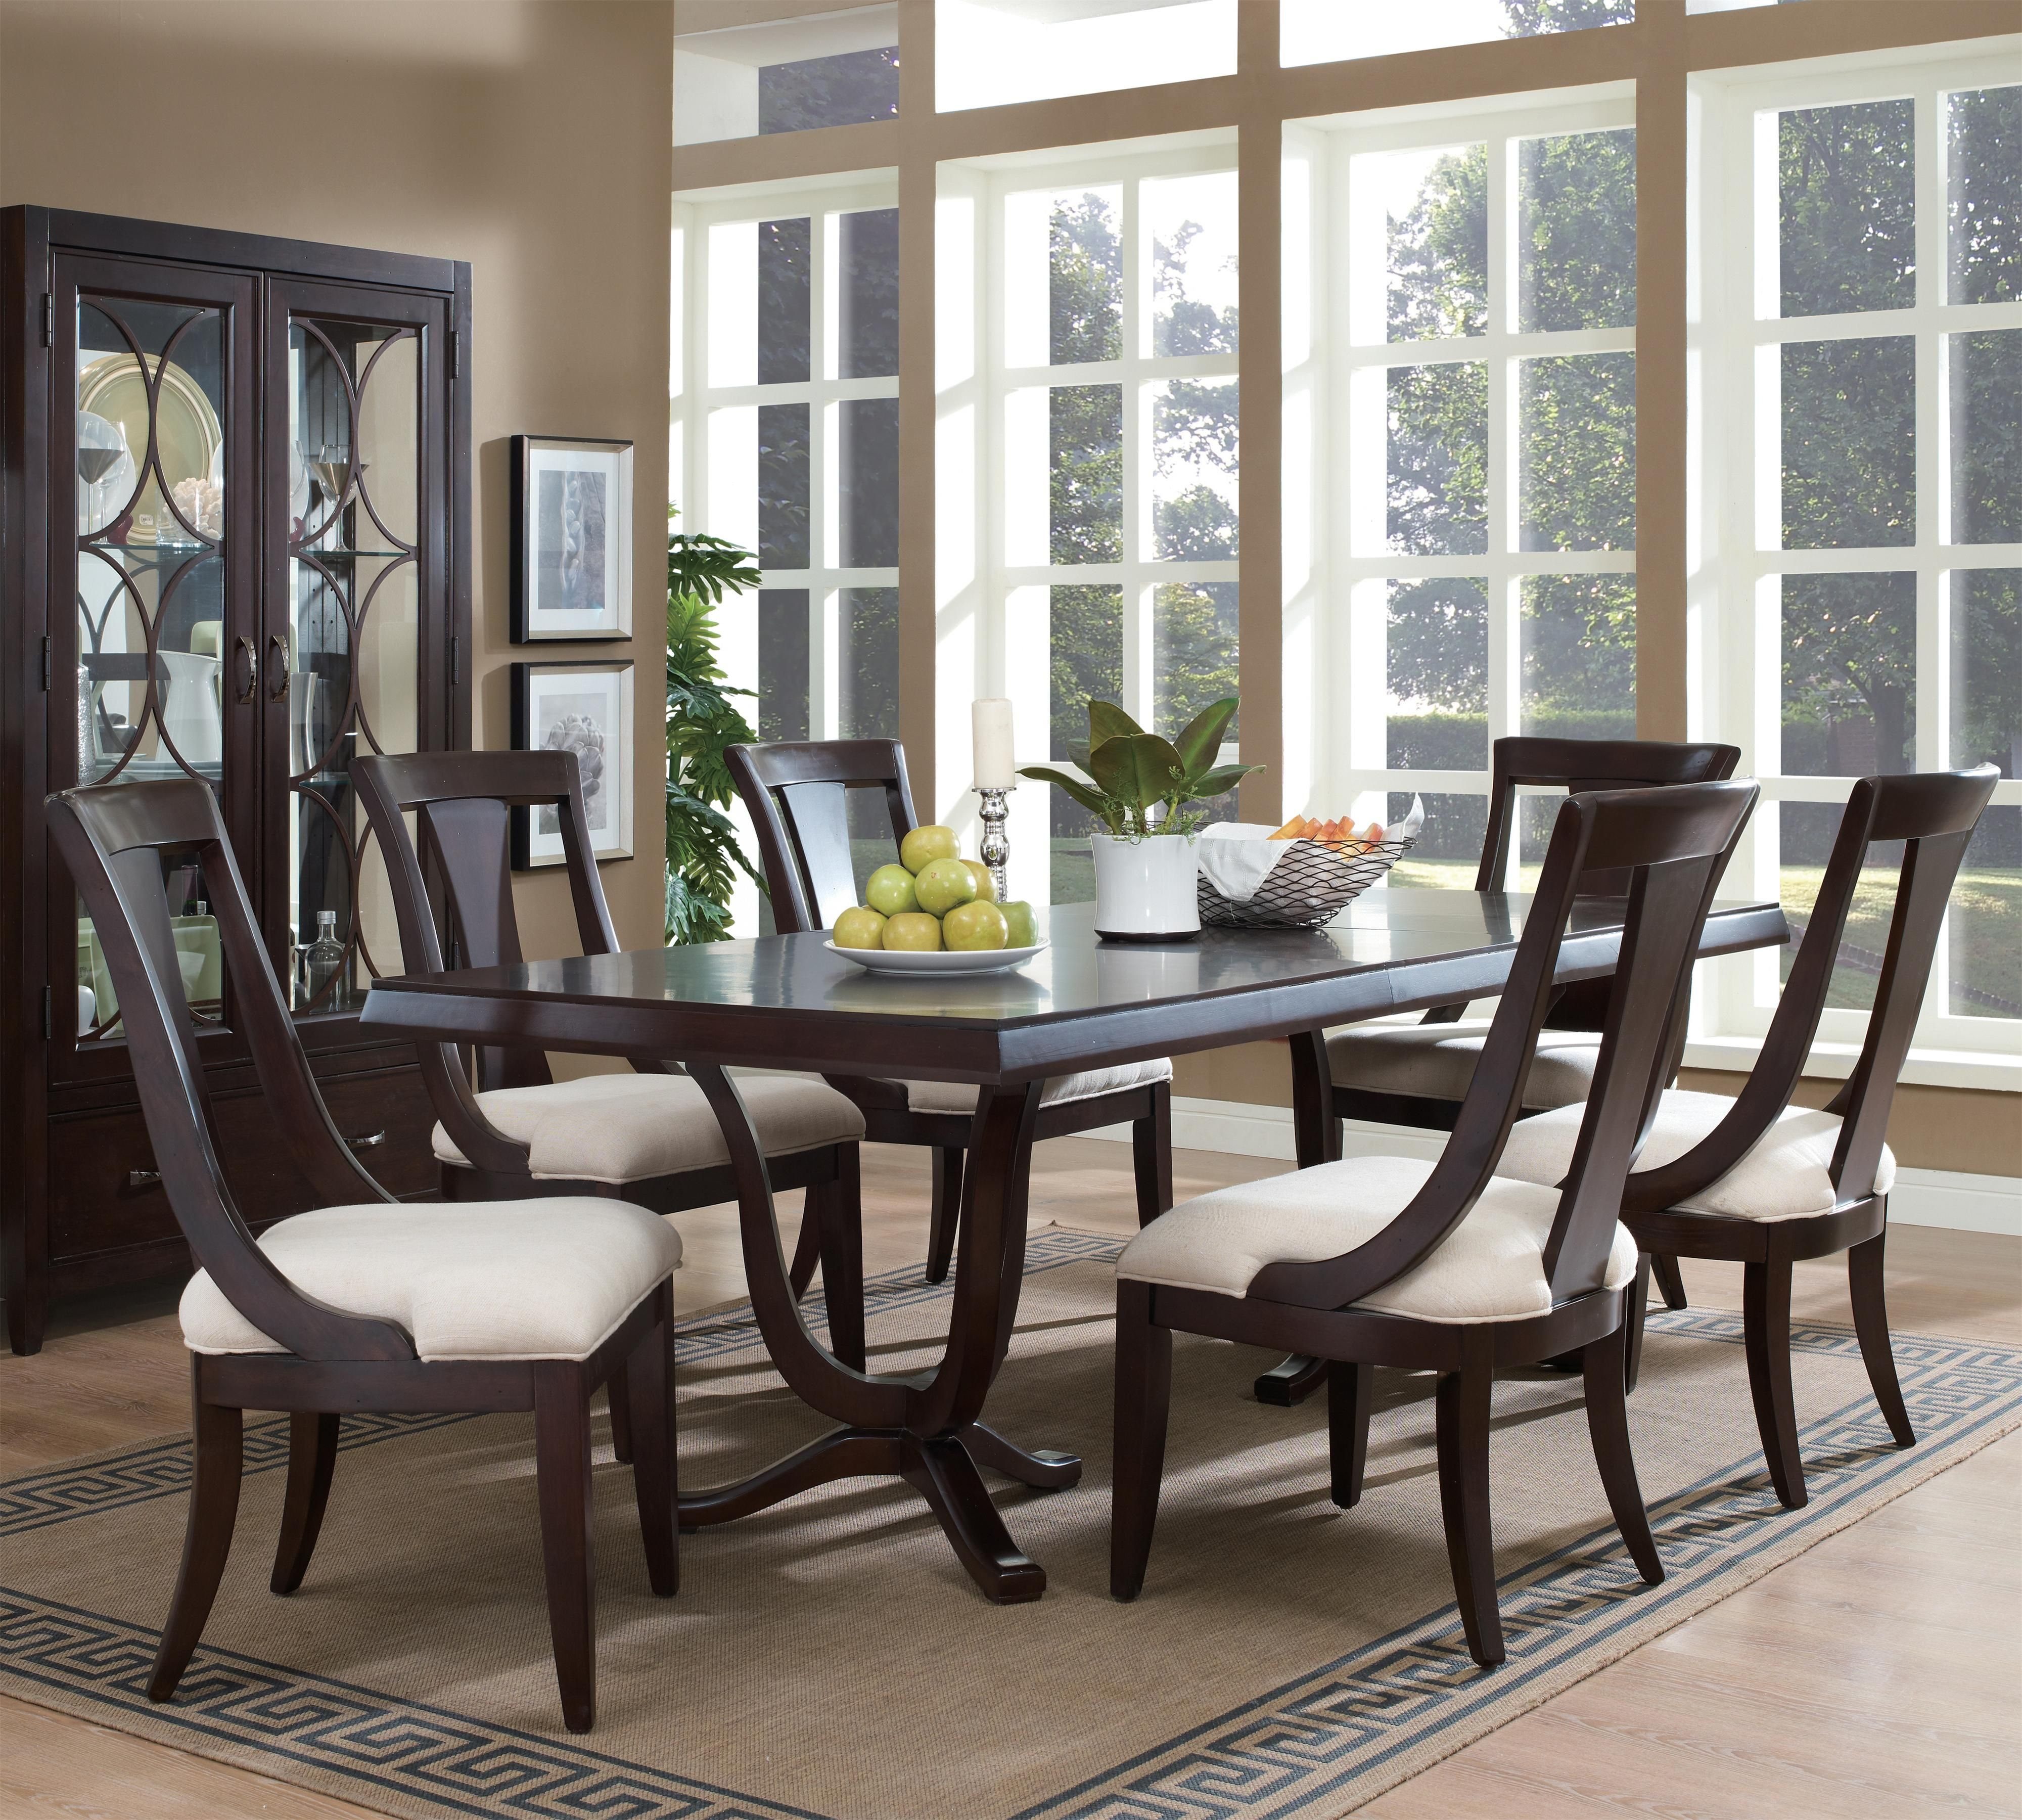 Plaza Square Double-Pedestal Rectangular Dining Table With